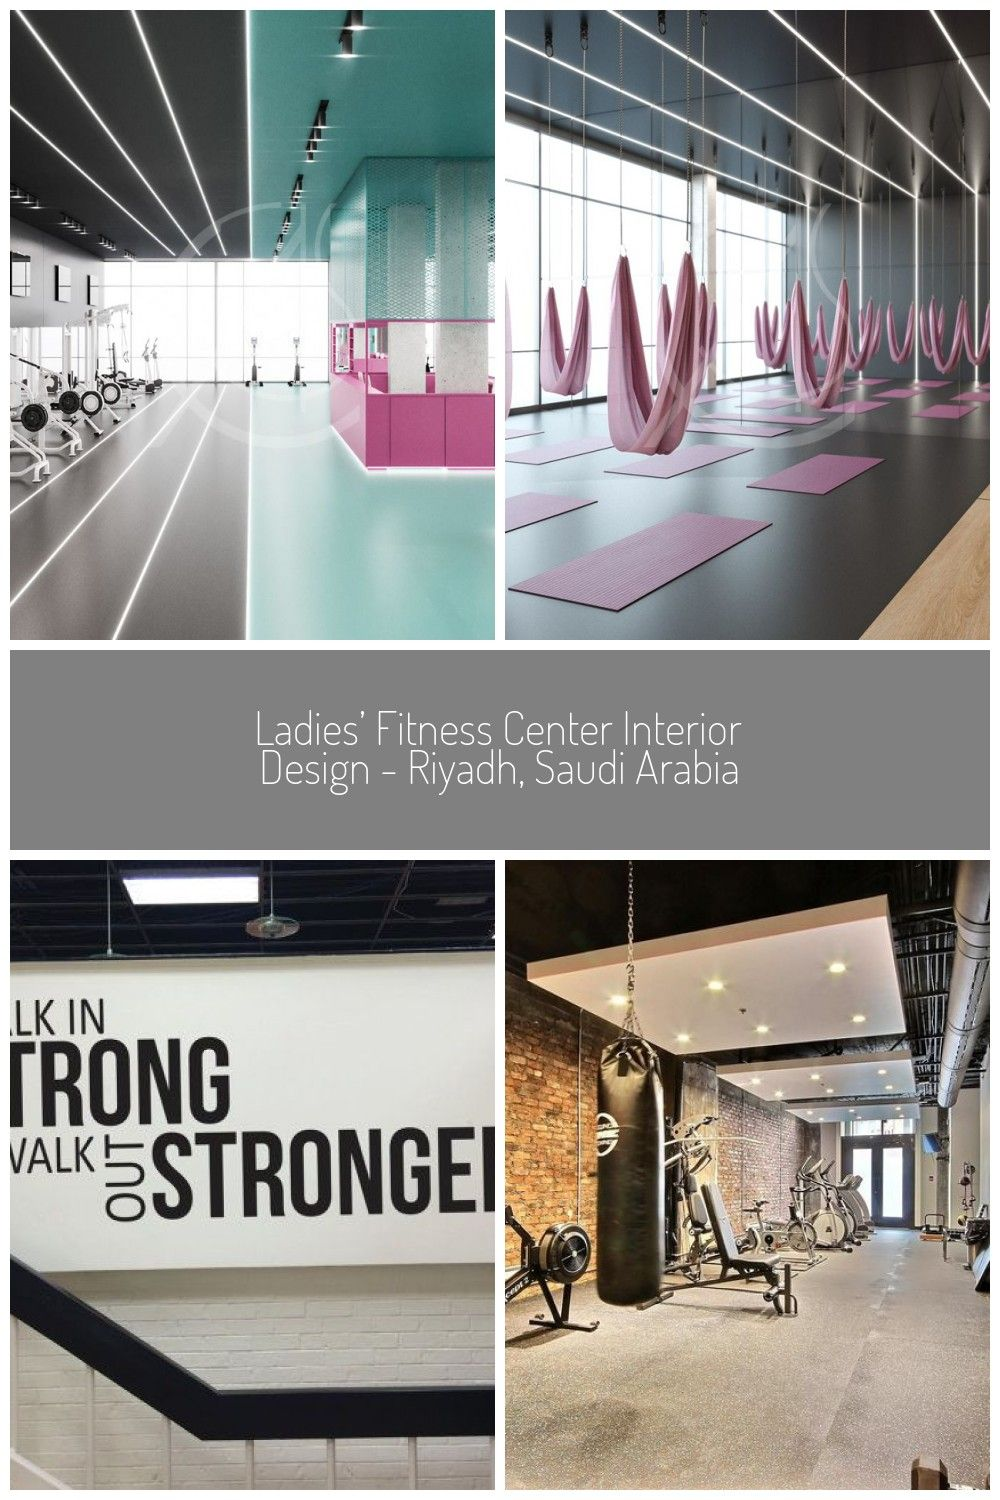 Various activities can take place in this spacious fitness room in the ladies fitness center, furnis...